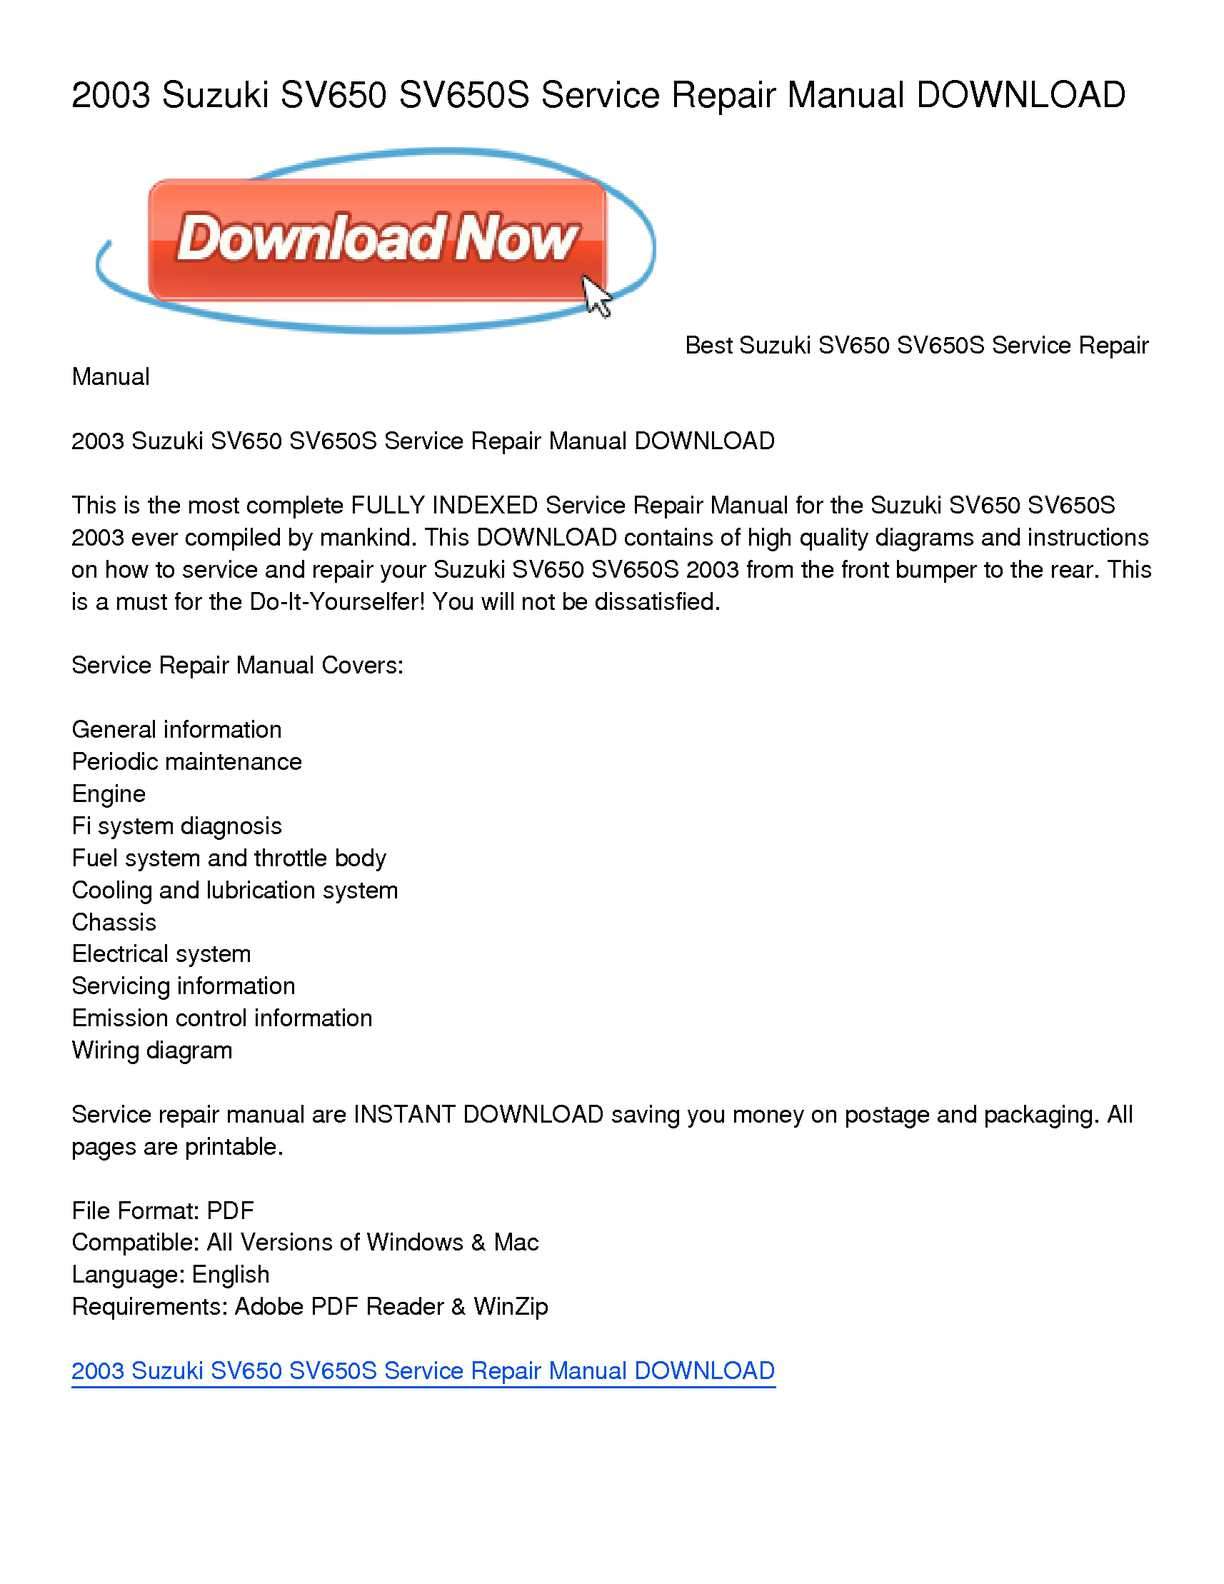 images for suzuki sv cooling and lubrication system 1998 2002 suzuki sv650 servicerepair manual instant this is the mostplete service repair manual